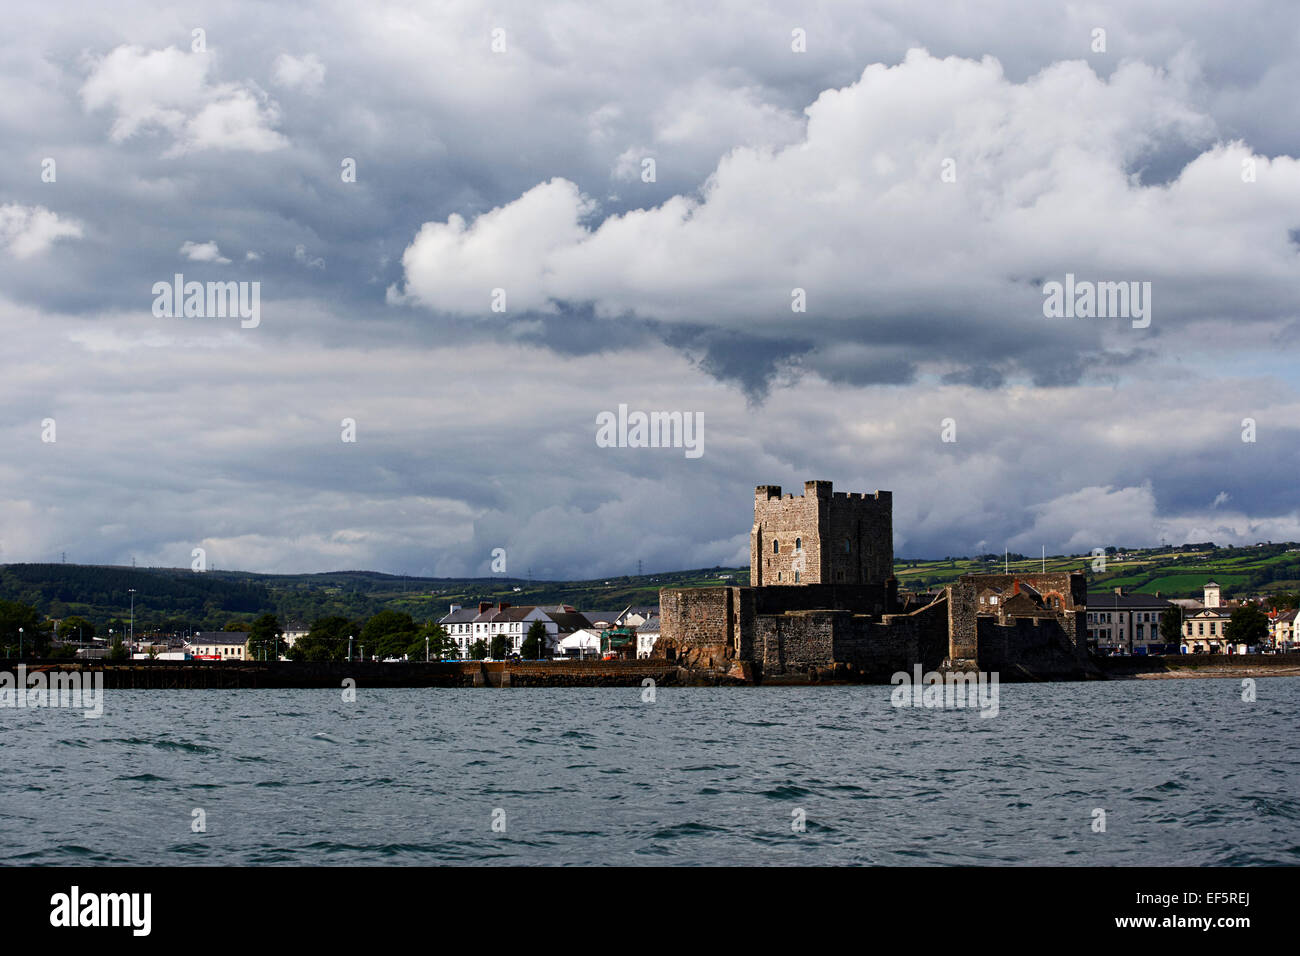 storm clouds over carrickfergus castle and harbour county antrim ireland - Stock Image